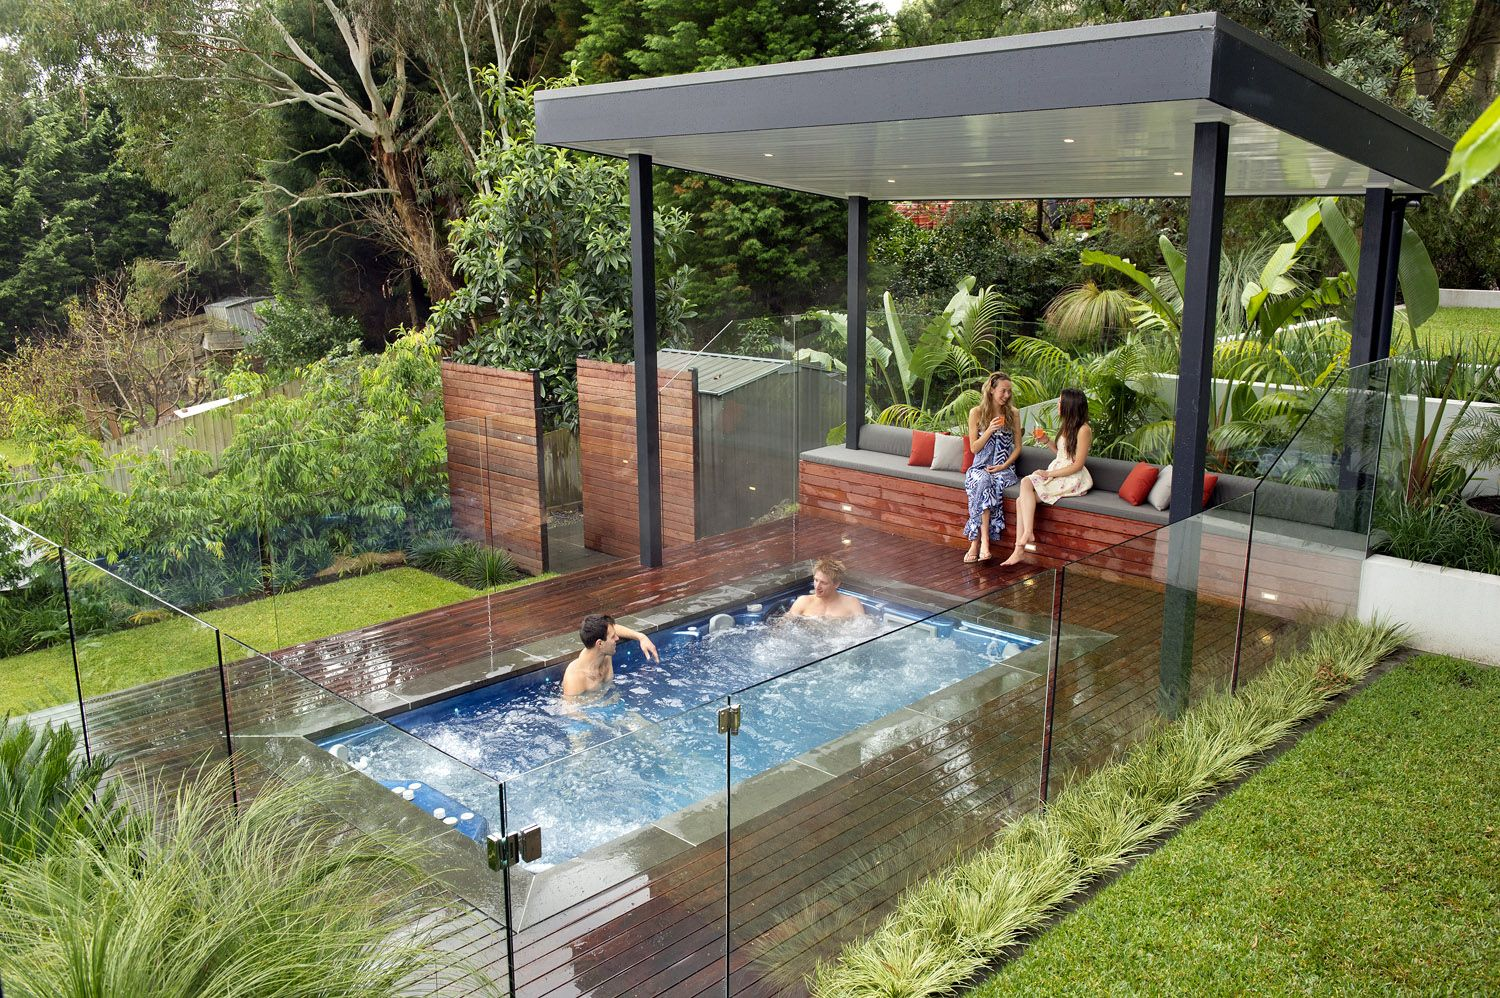 Modern nice design of the outdoor spa landscaping ideas for Pool and backyard design